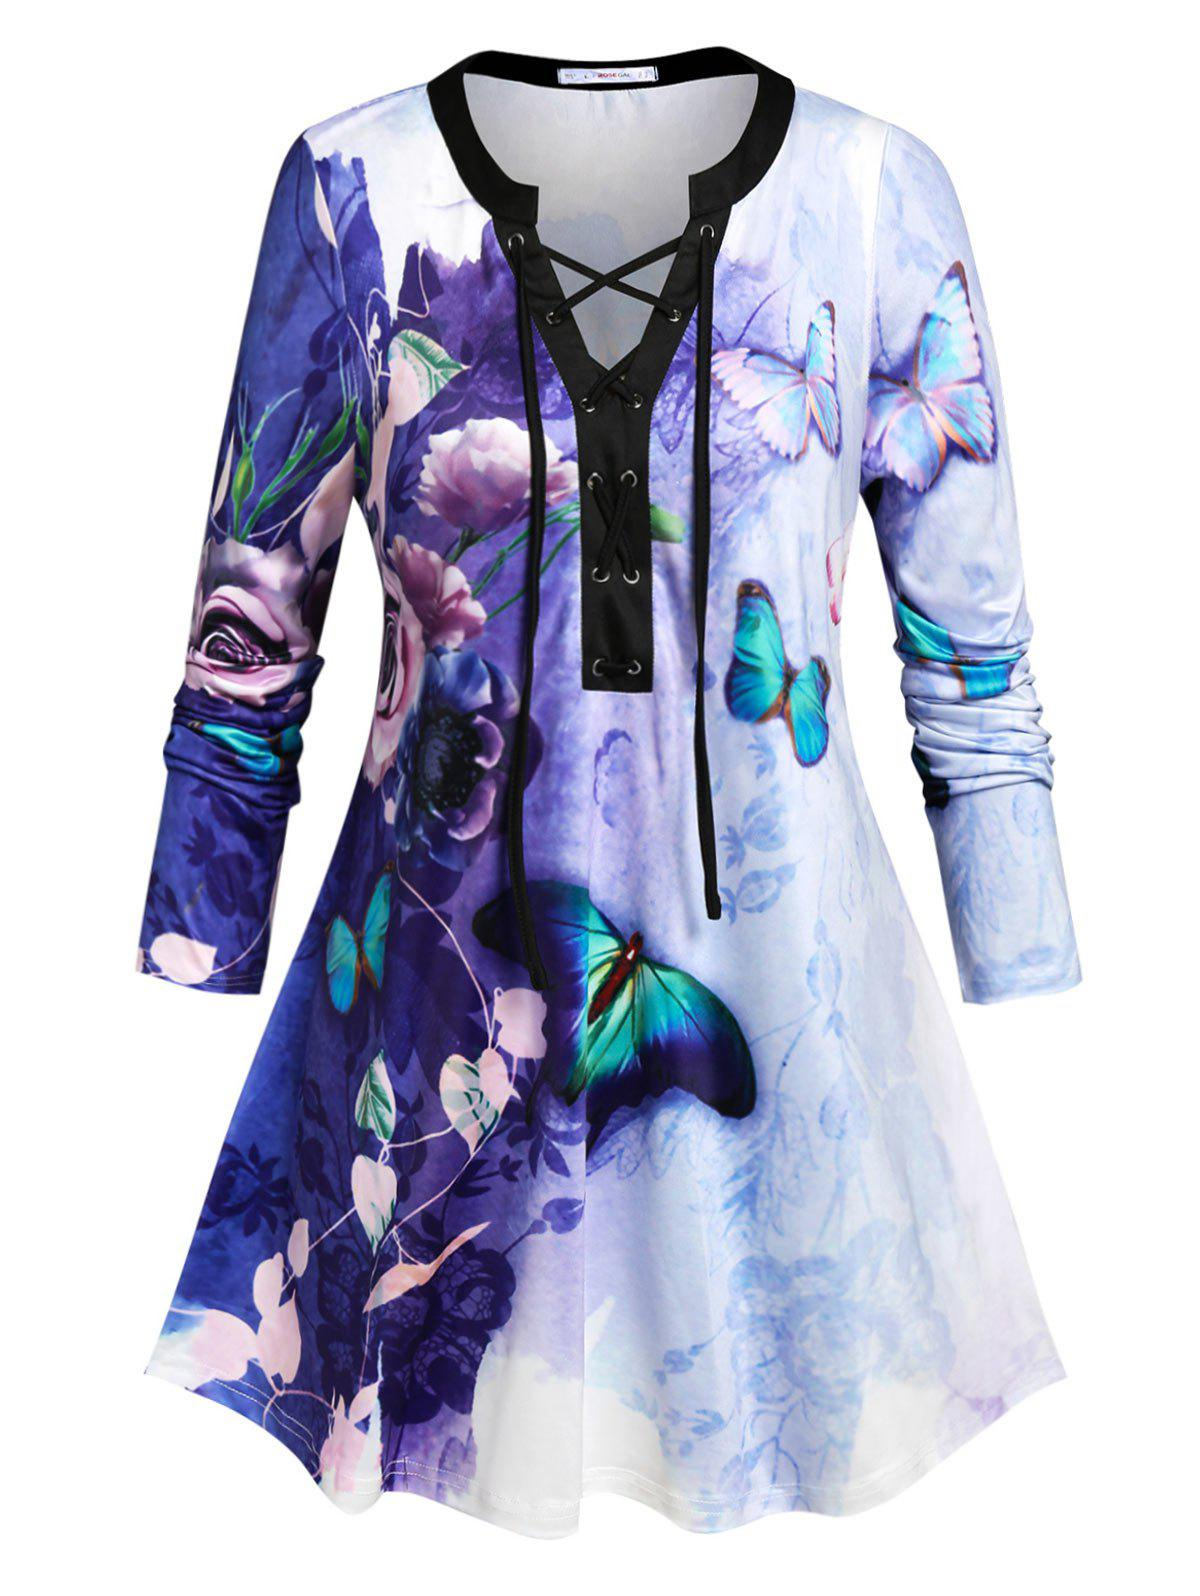 Plus Size Butterfly Flower Lace Up Tie Dye T-shirt - CONCORD 5X